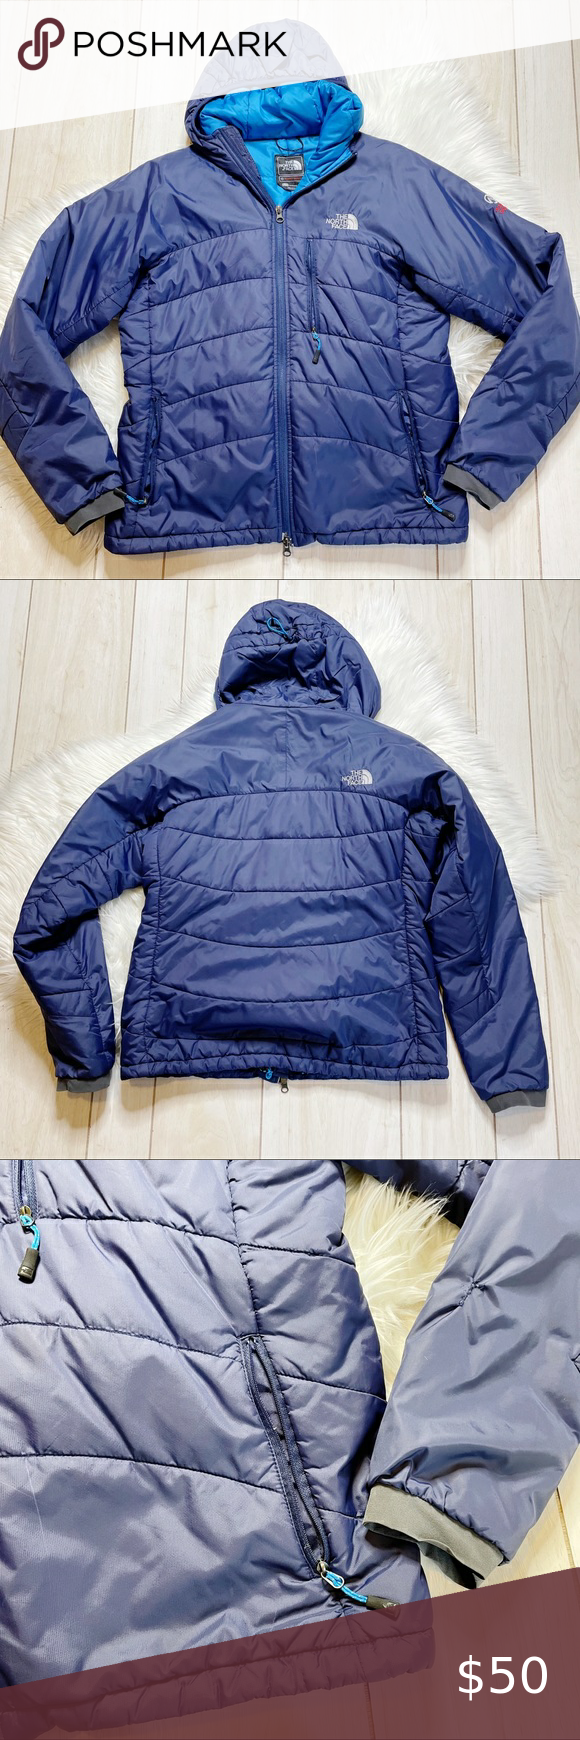 The North Face Navy Blue Puffer Coat Jacket Puffer Coat Black North Face Jacket North Face Puffer Jacket [ 1740 x 580 Pixel ]